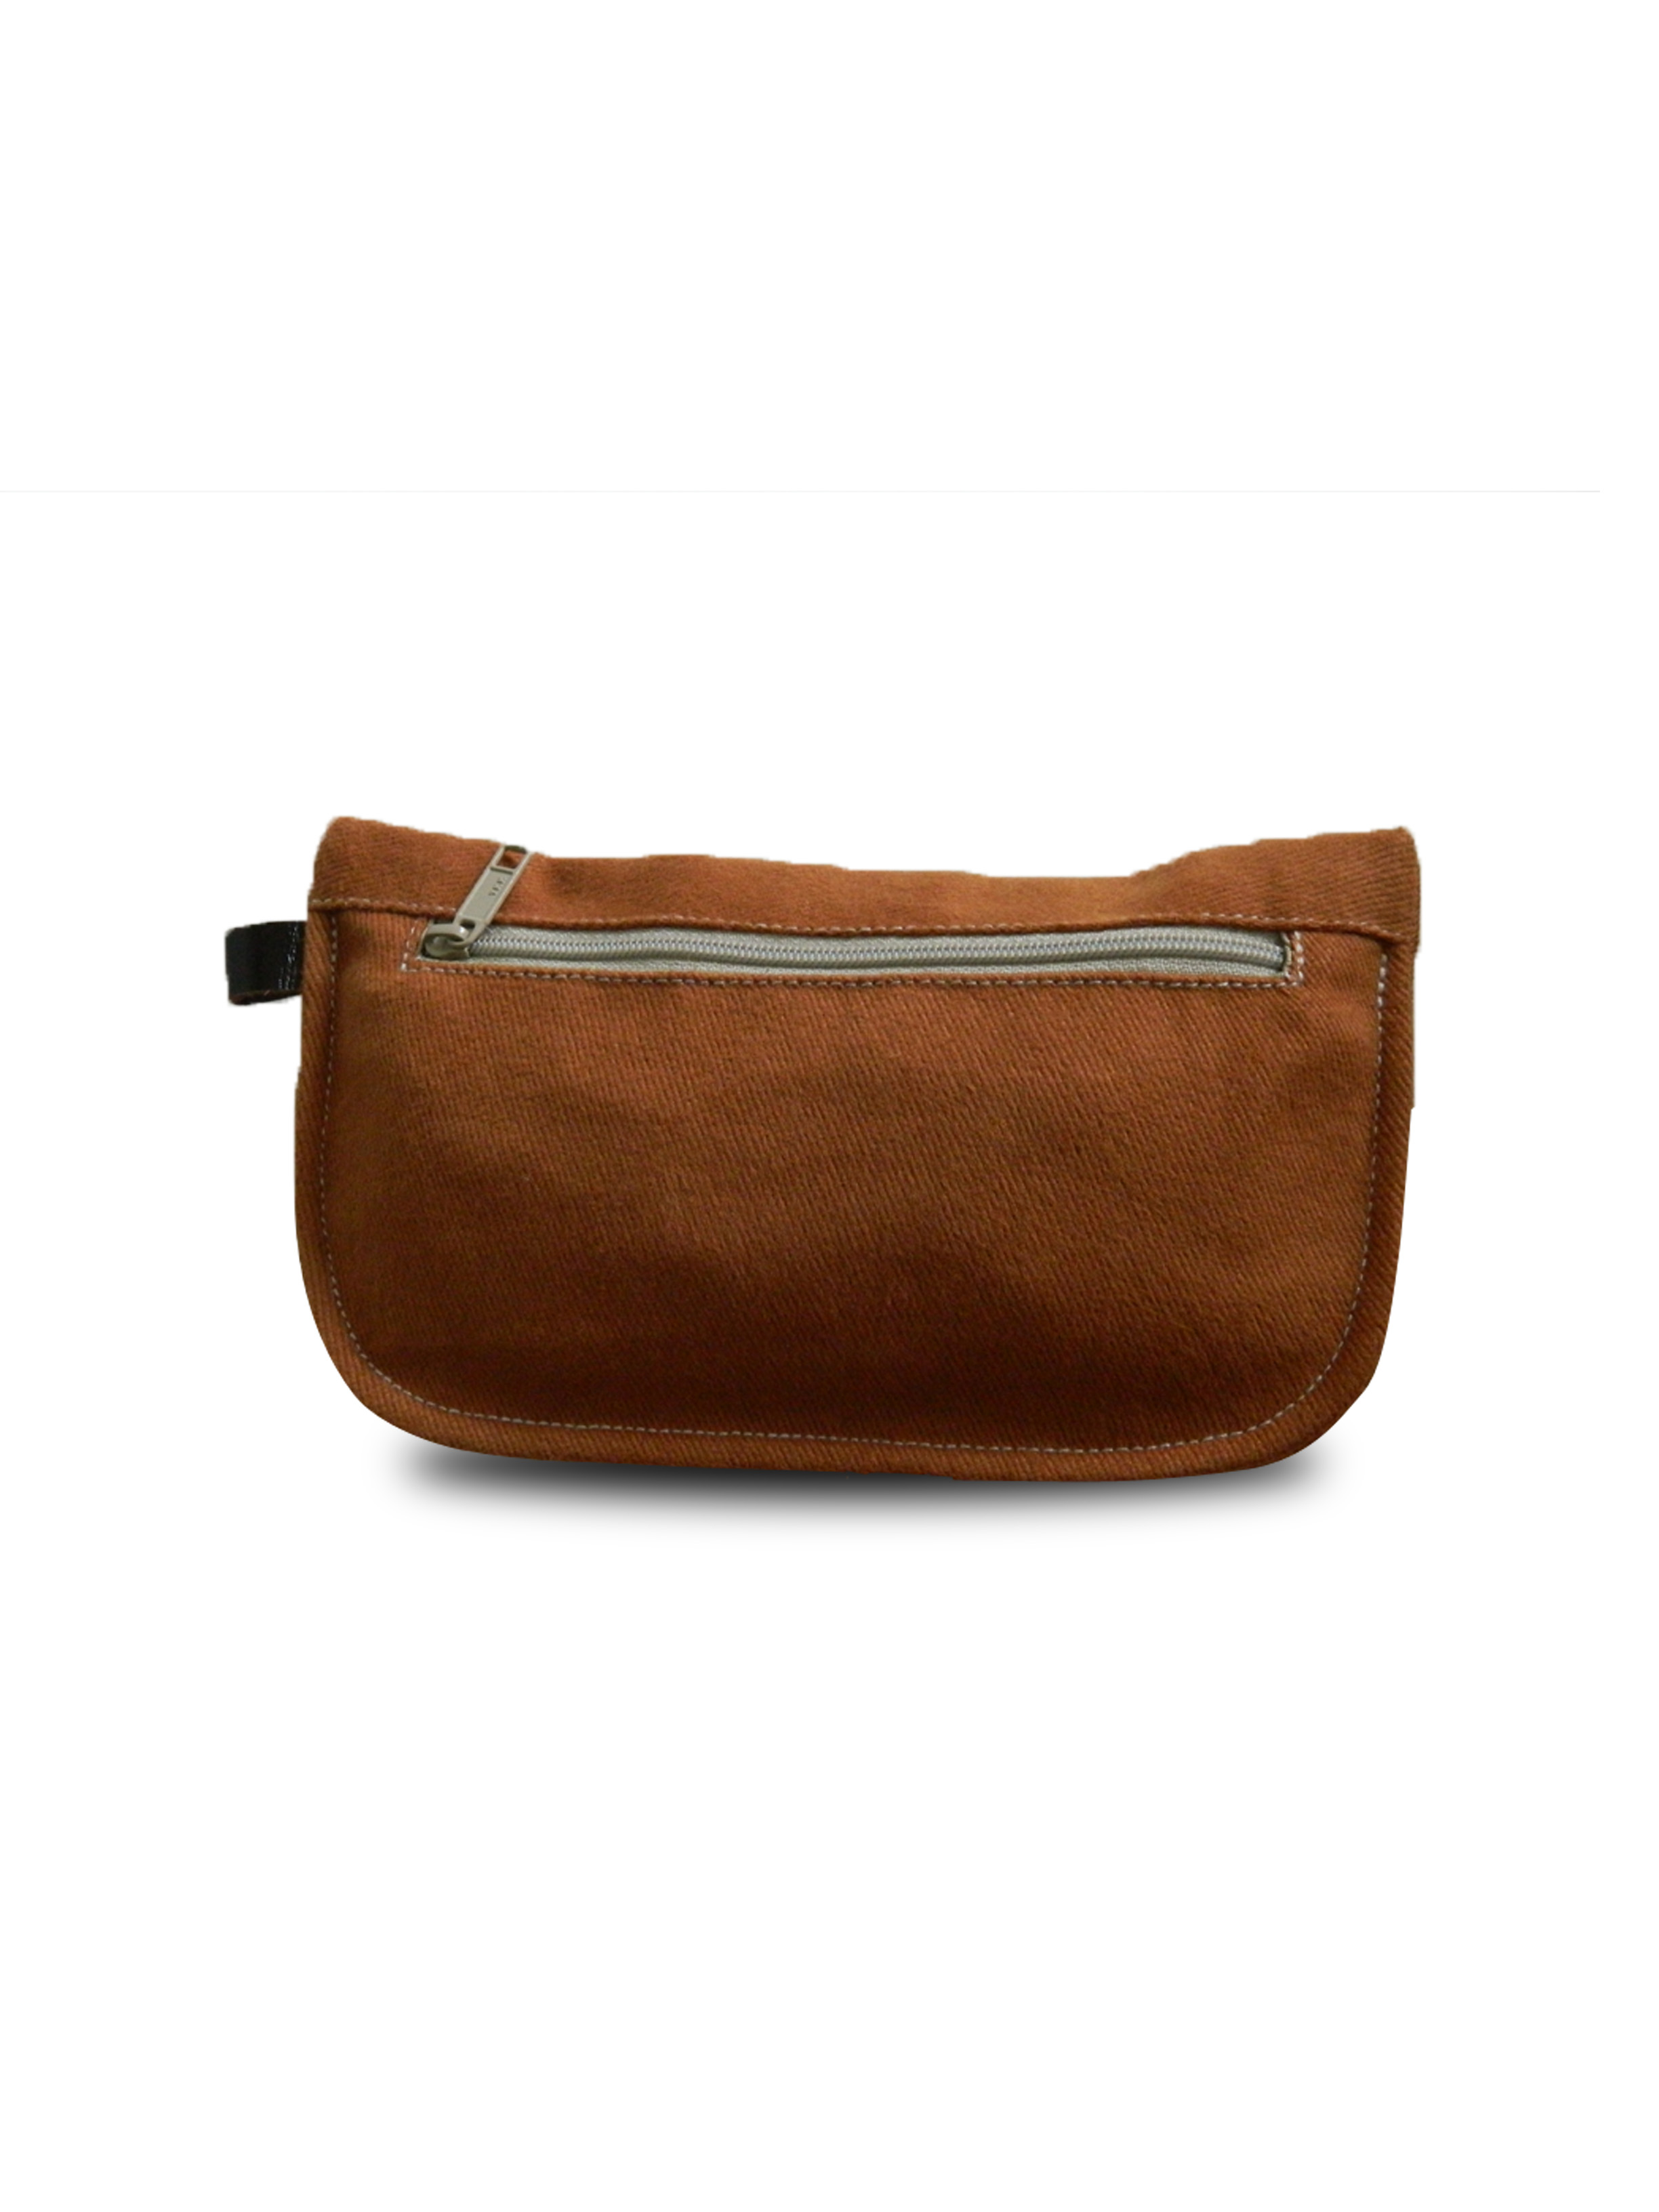 POUCH -